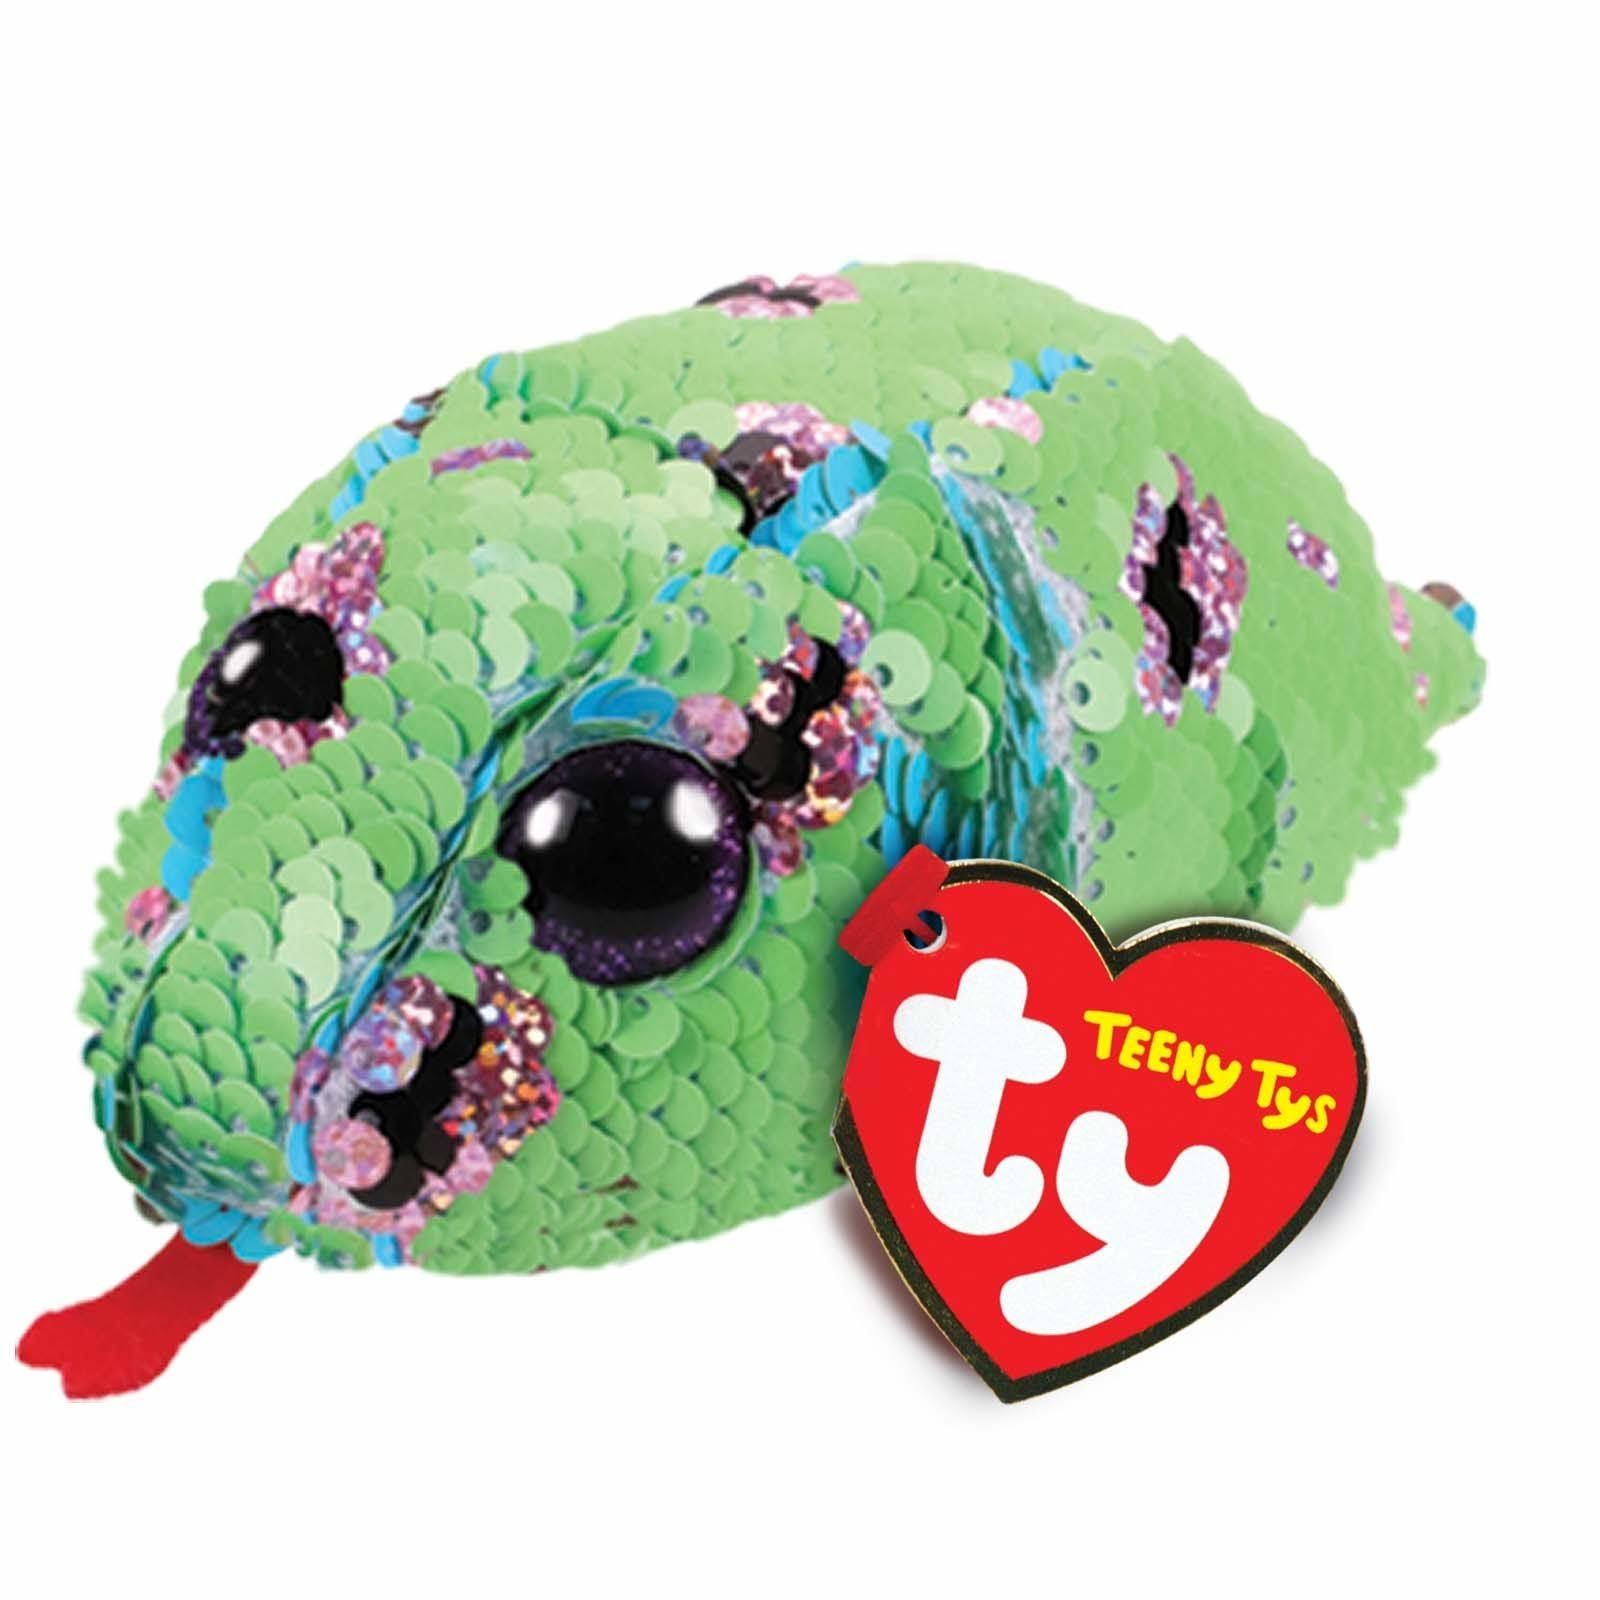 Ty Beanie Boos Teeny Tys Stackable Sequin Plush Monty The Snake